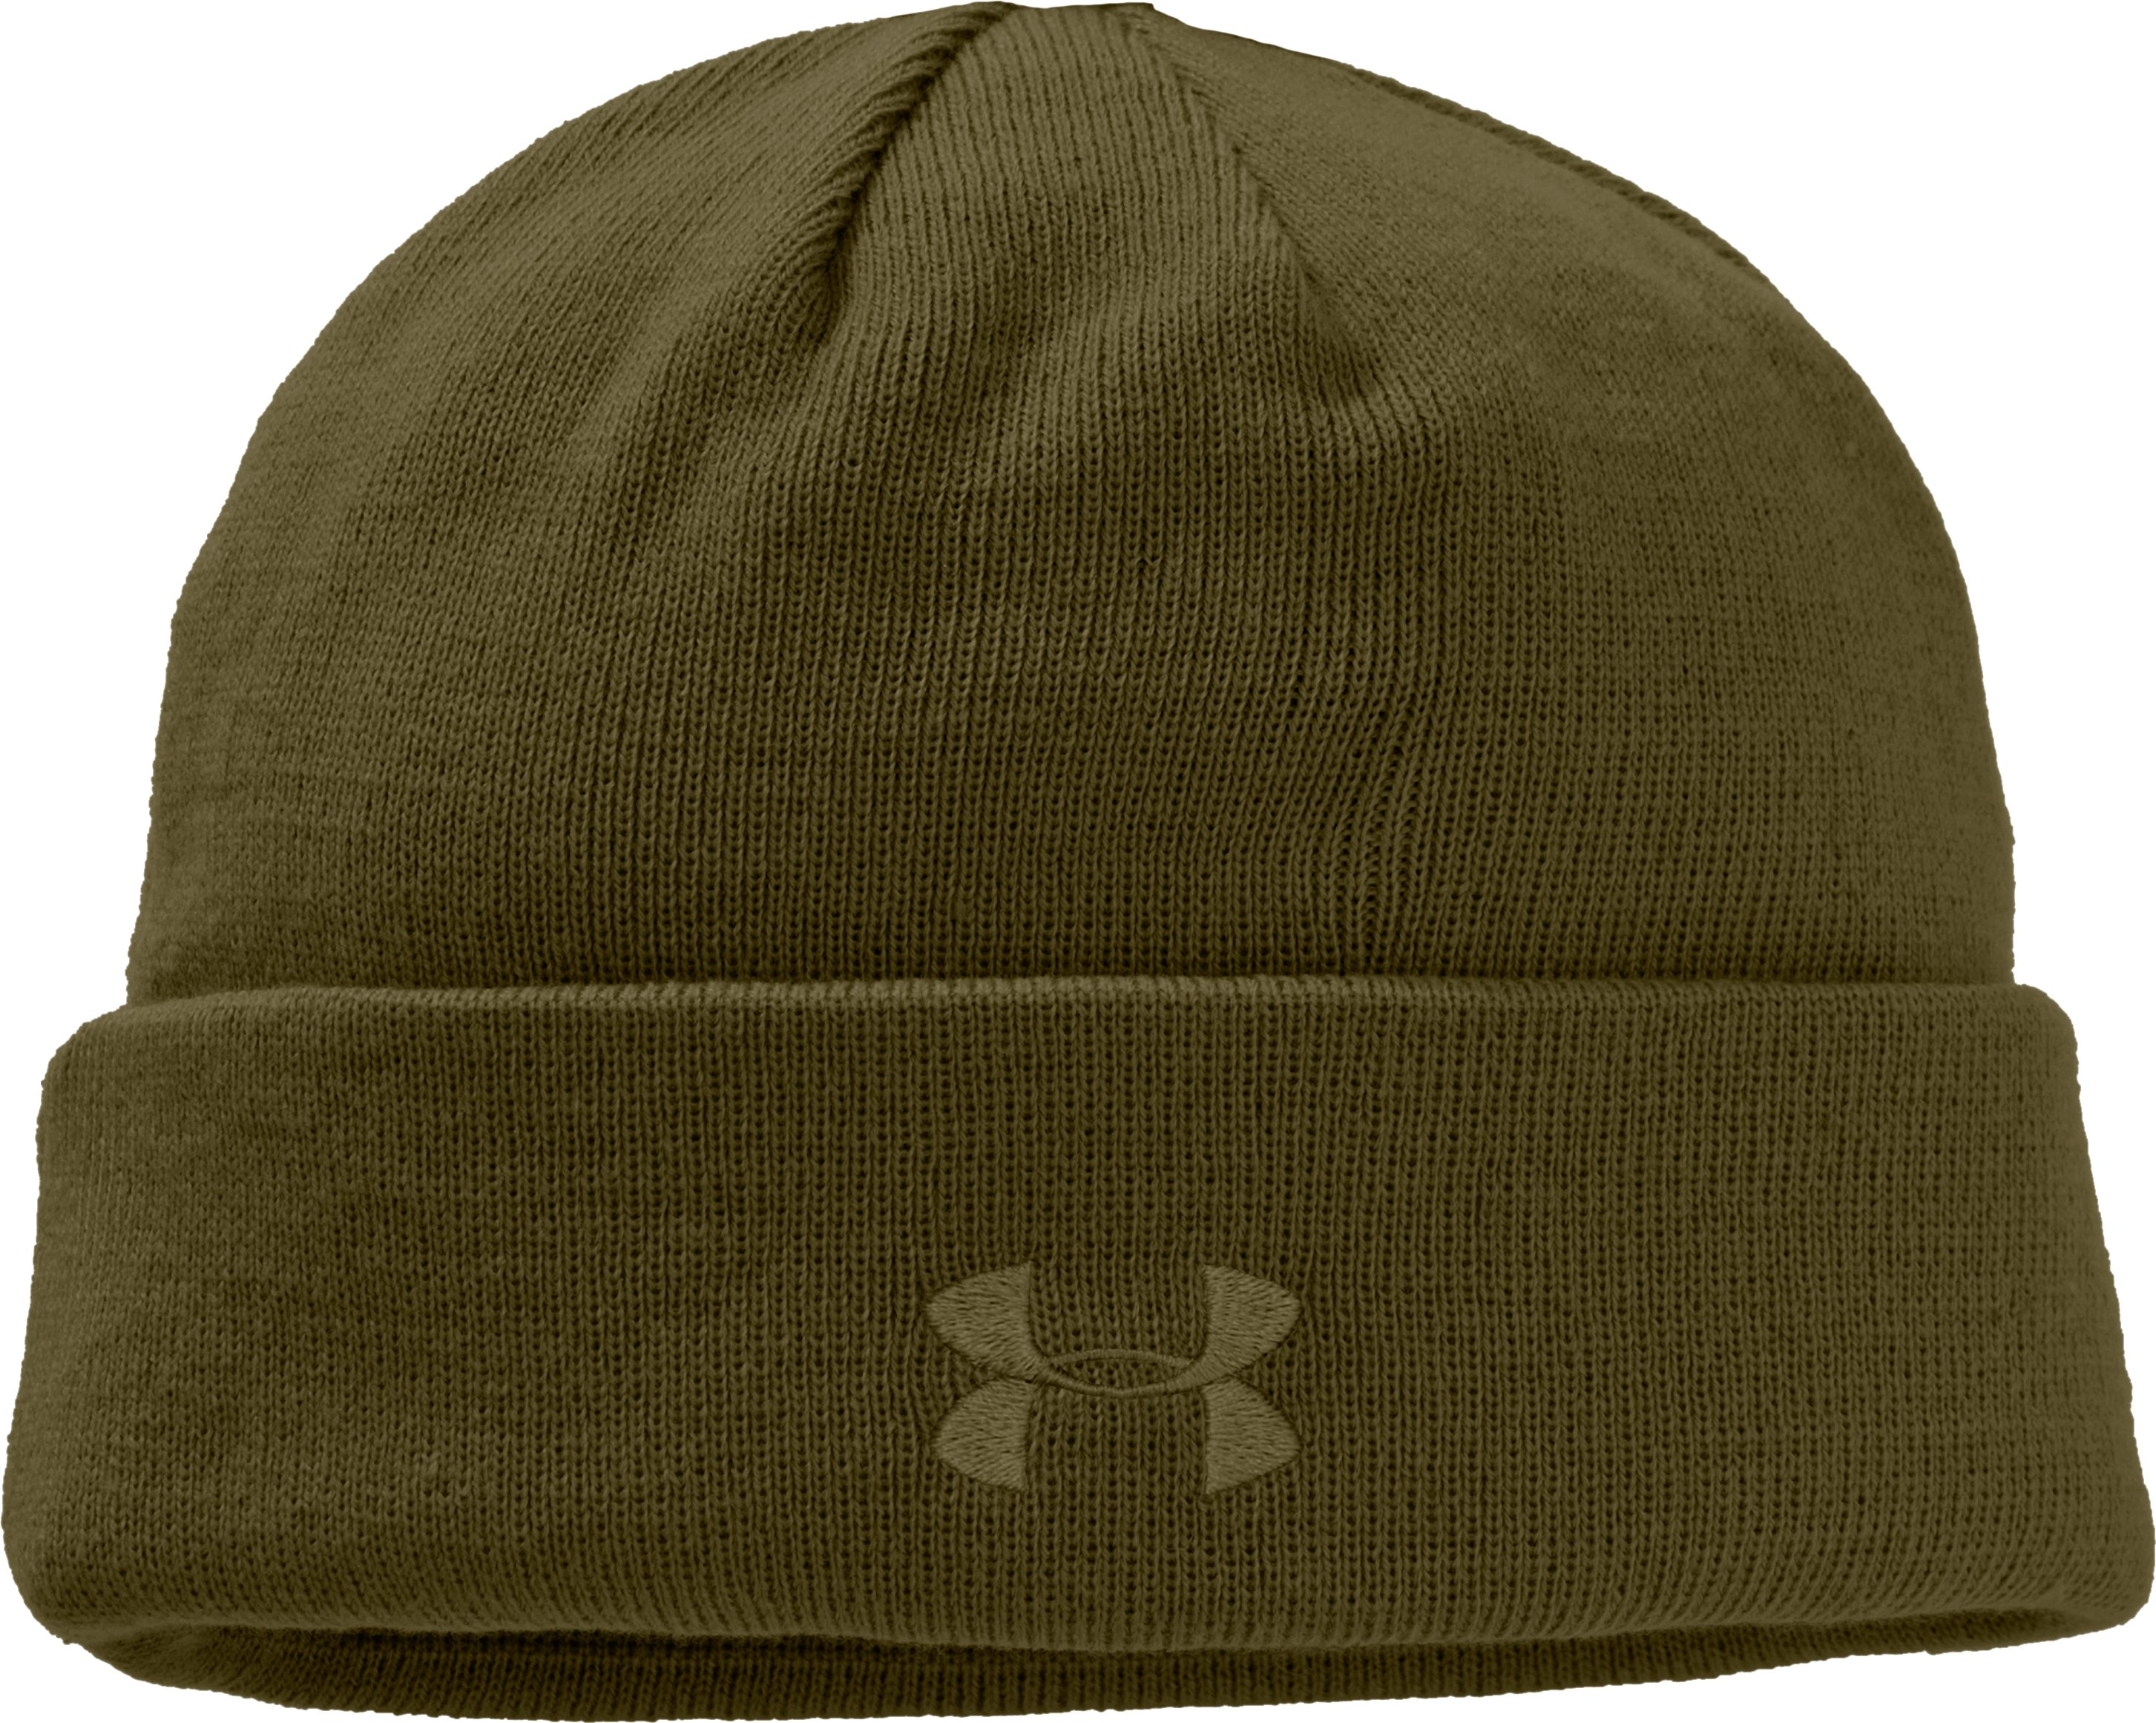 Men's Tactical Stealth Beanie, Marine OD Green, zoomed image